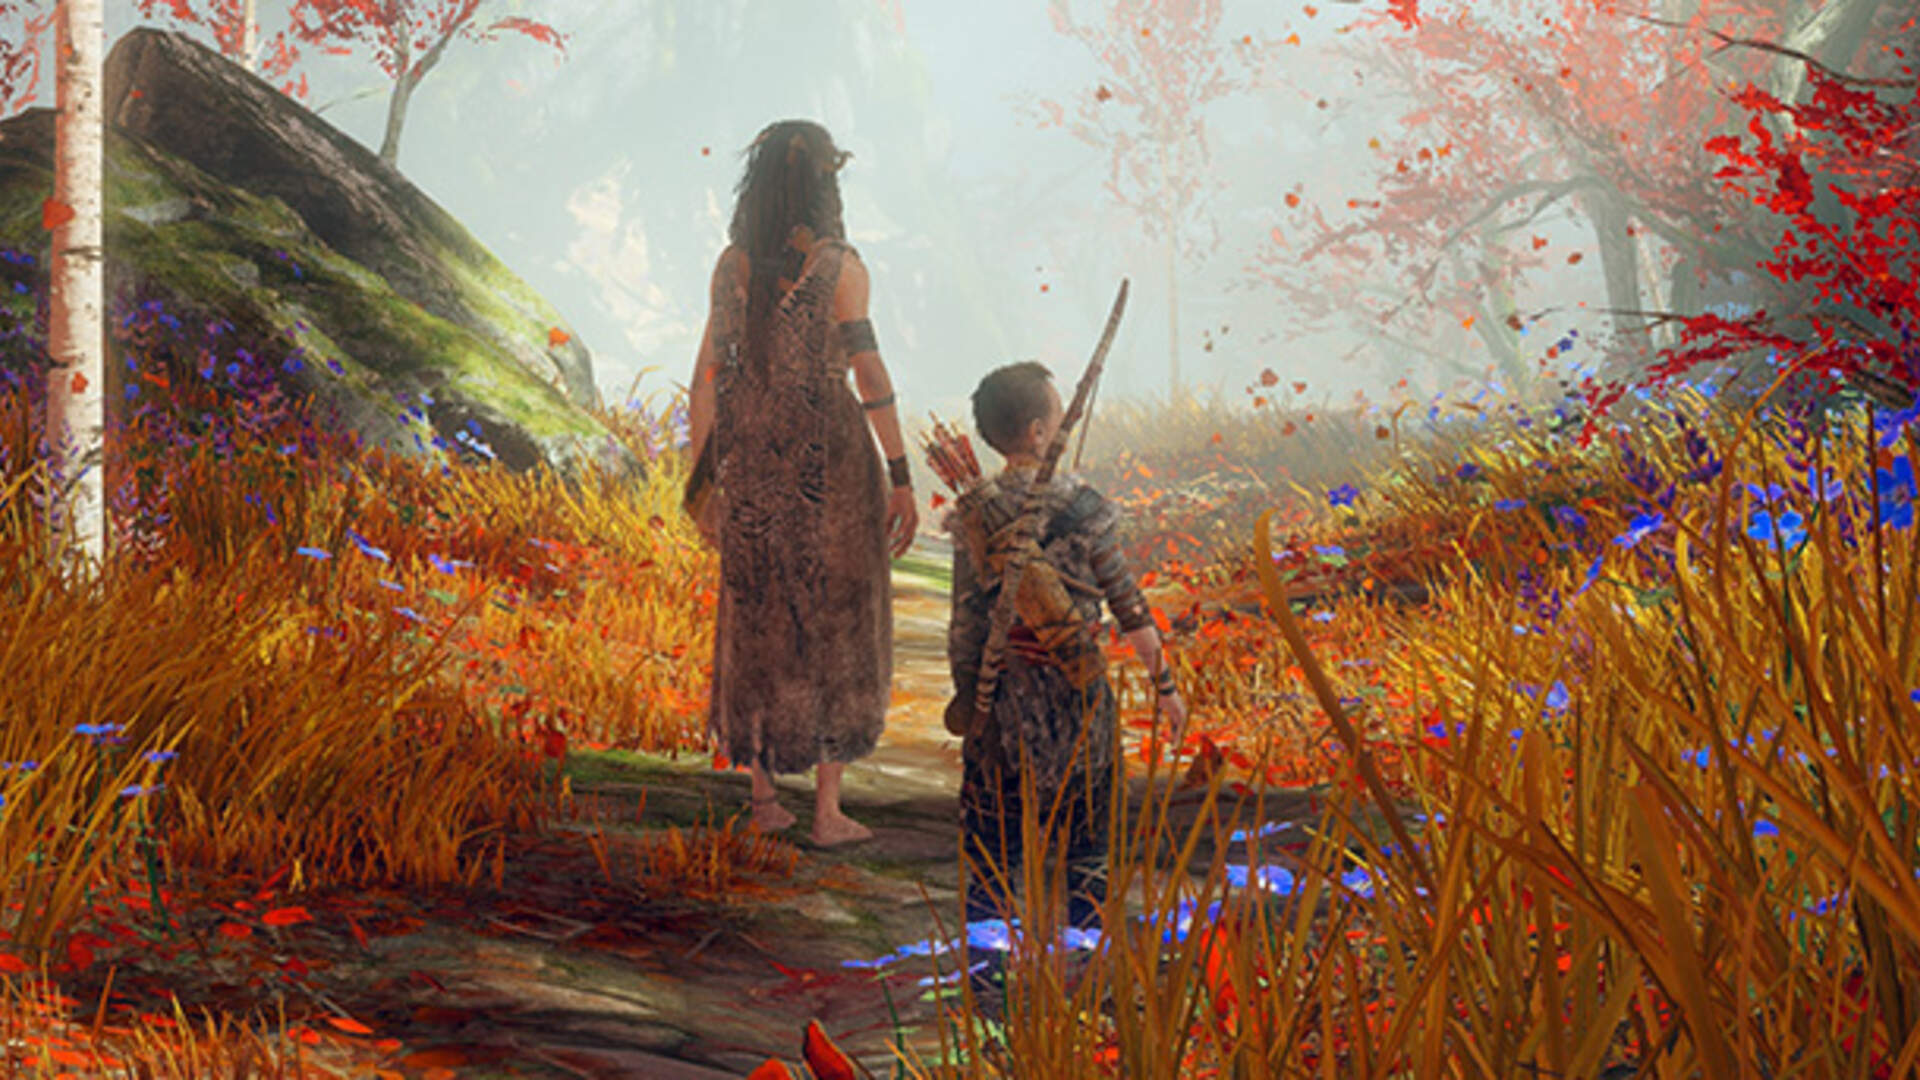 God of War Director Cory Barlog Briefly Considered Teaming Kratos With His Wife Rather Than His Son